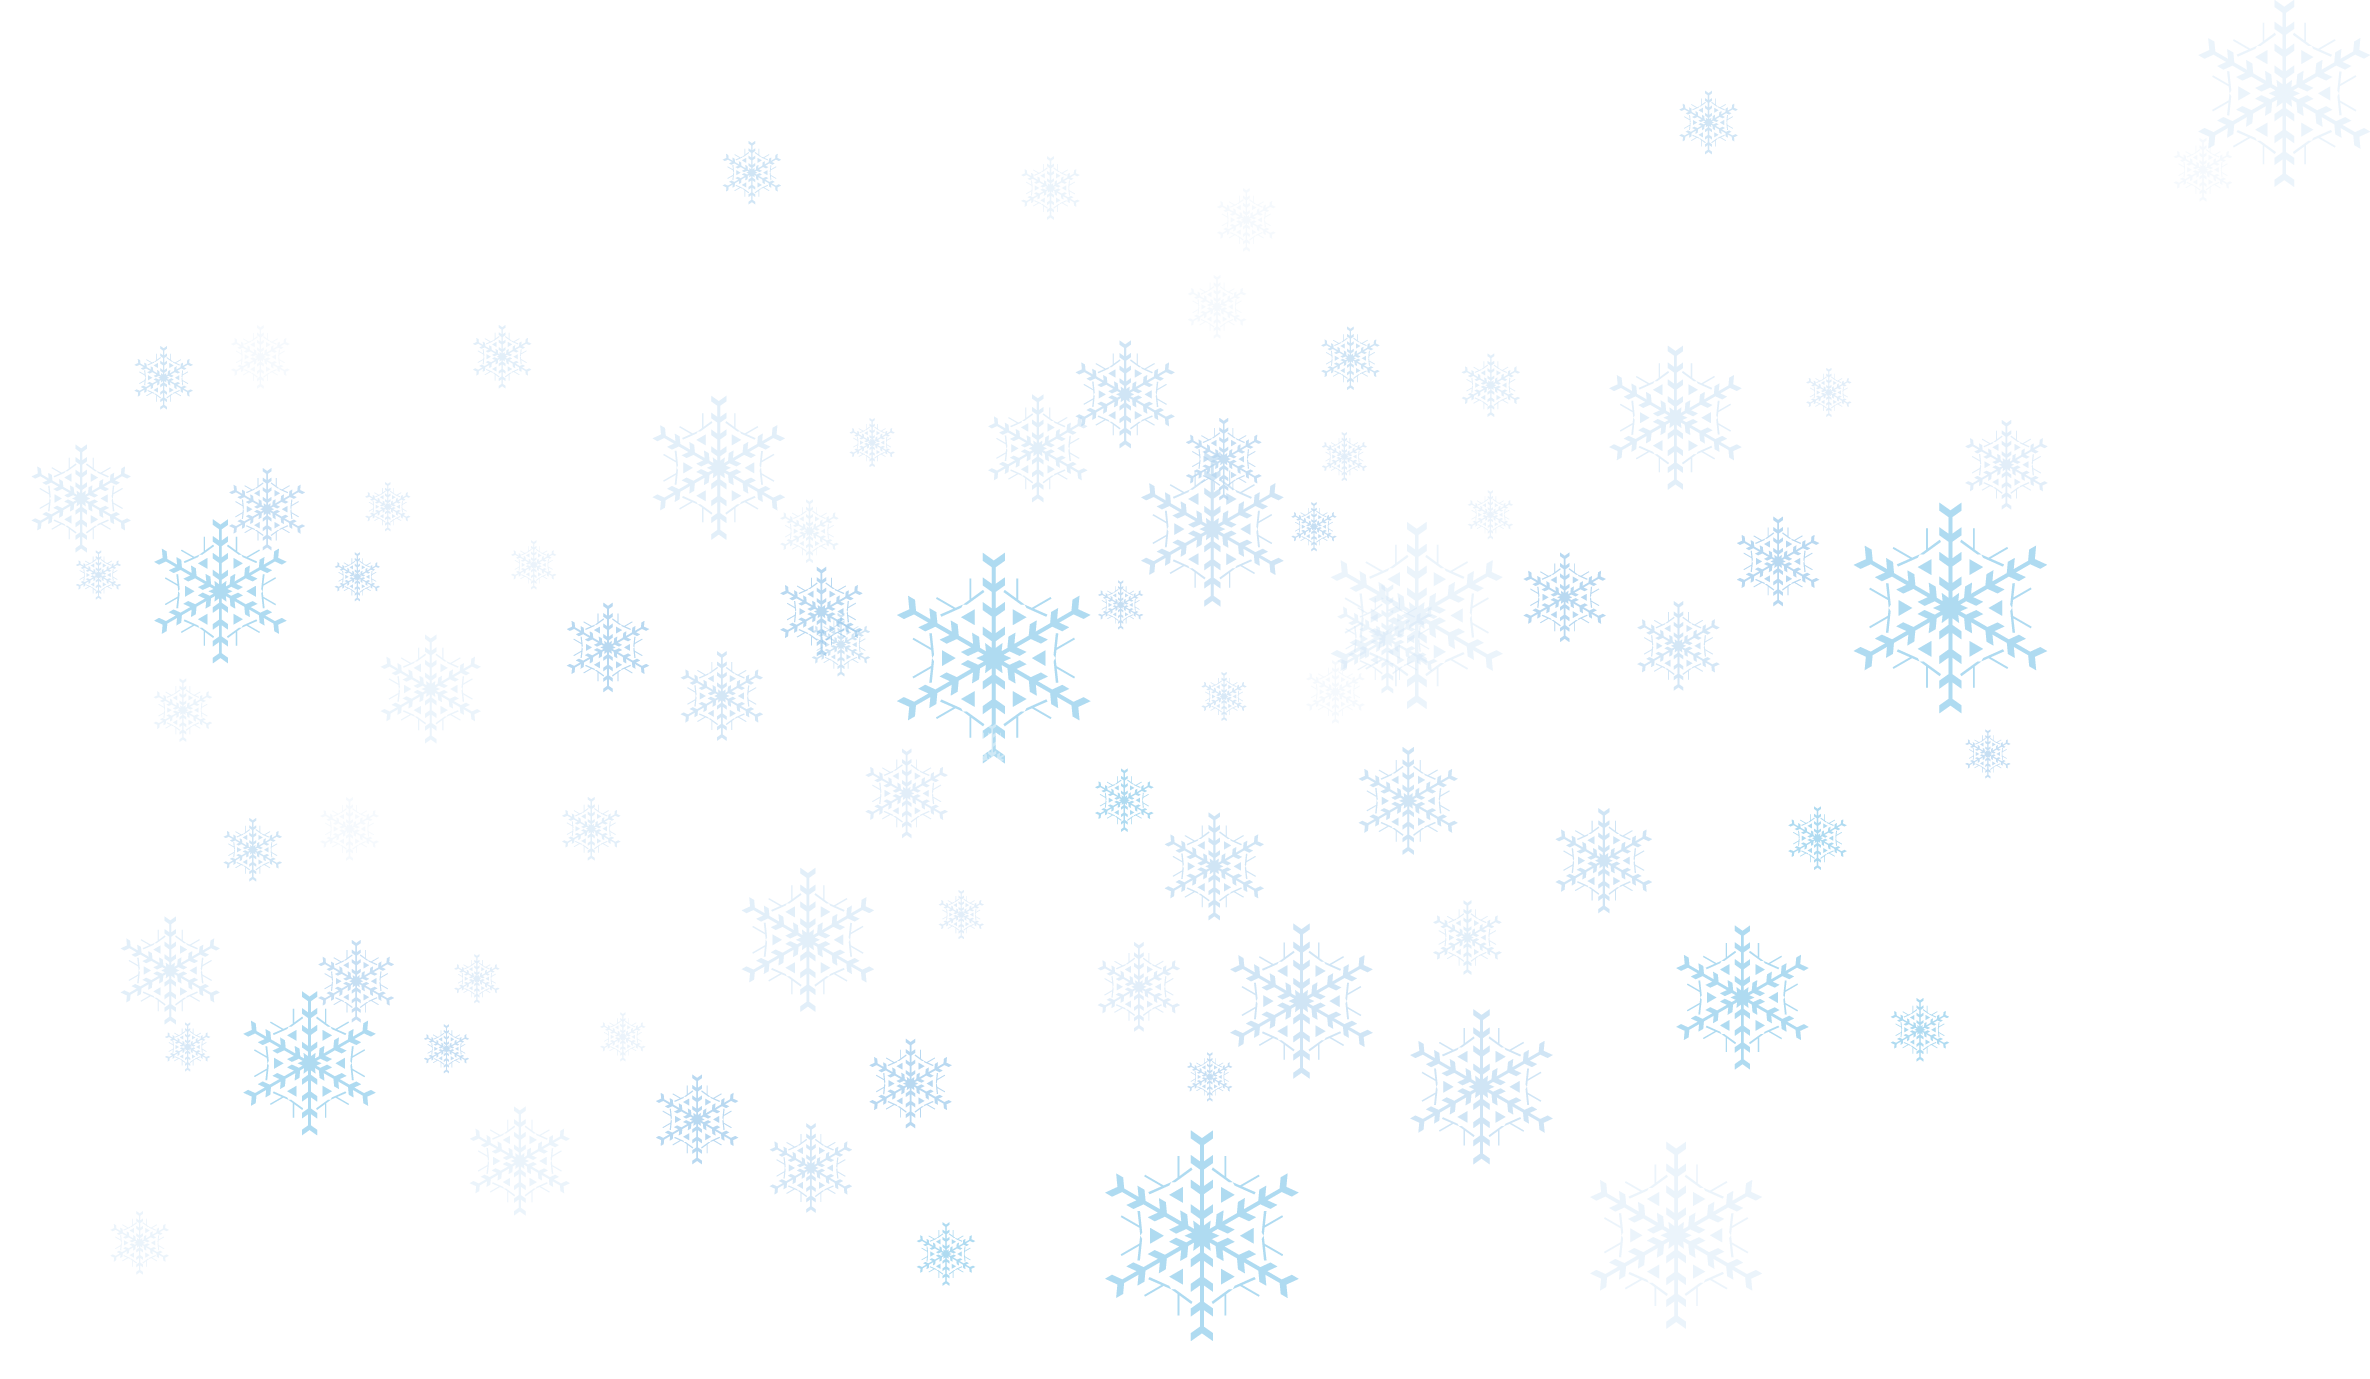 snowflake-clipart-transparent-background-16516-1-